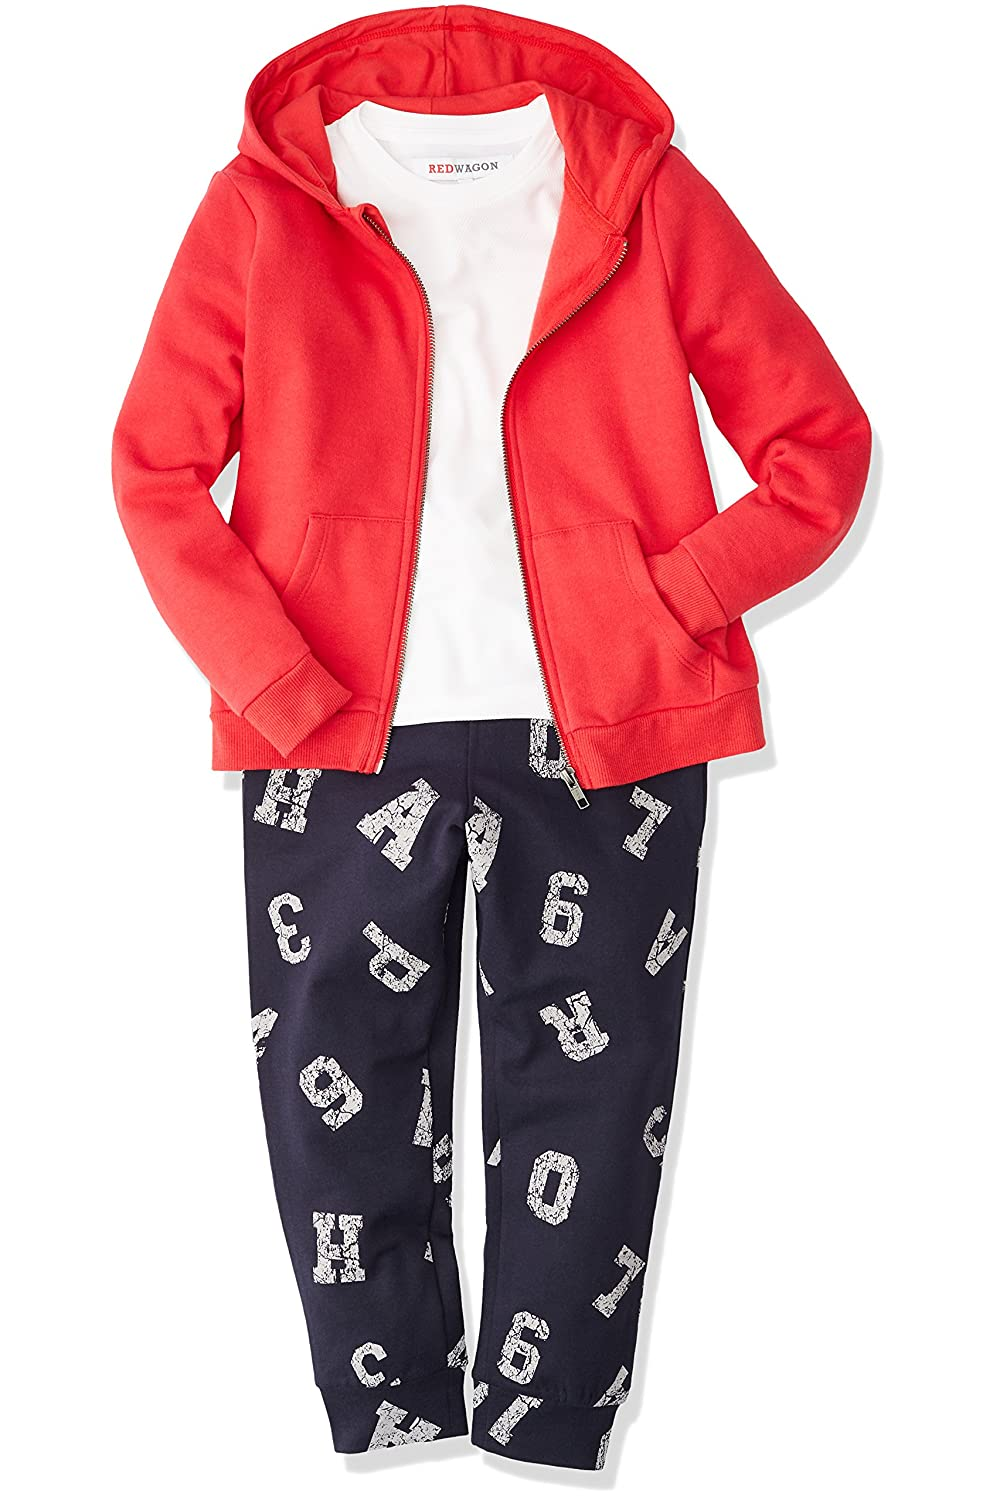 RED WAGON Boys Joggers